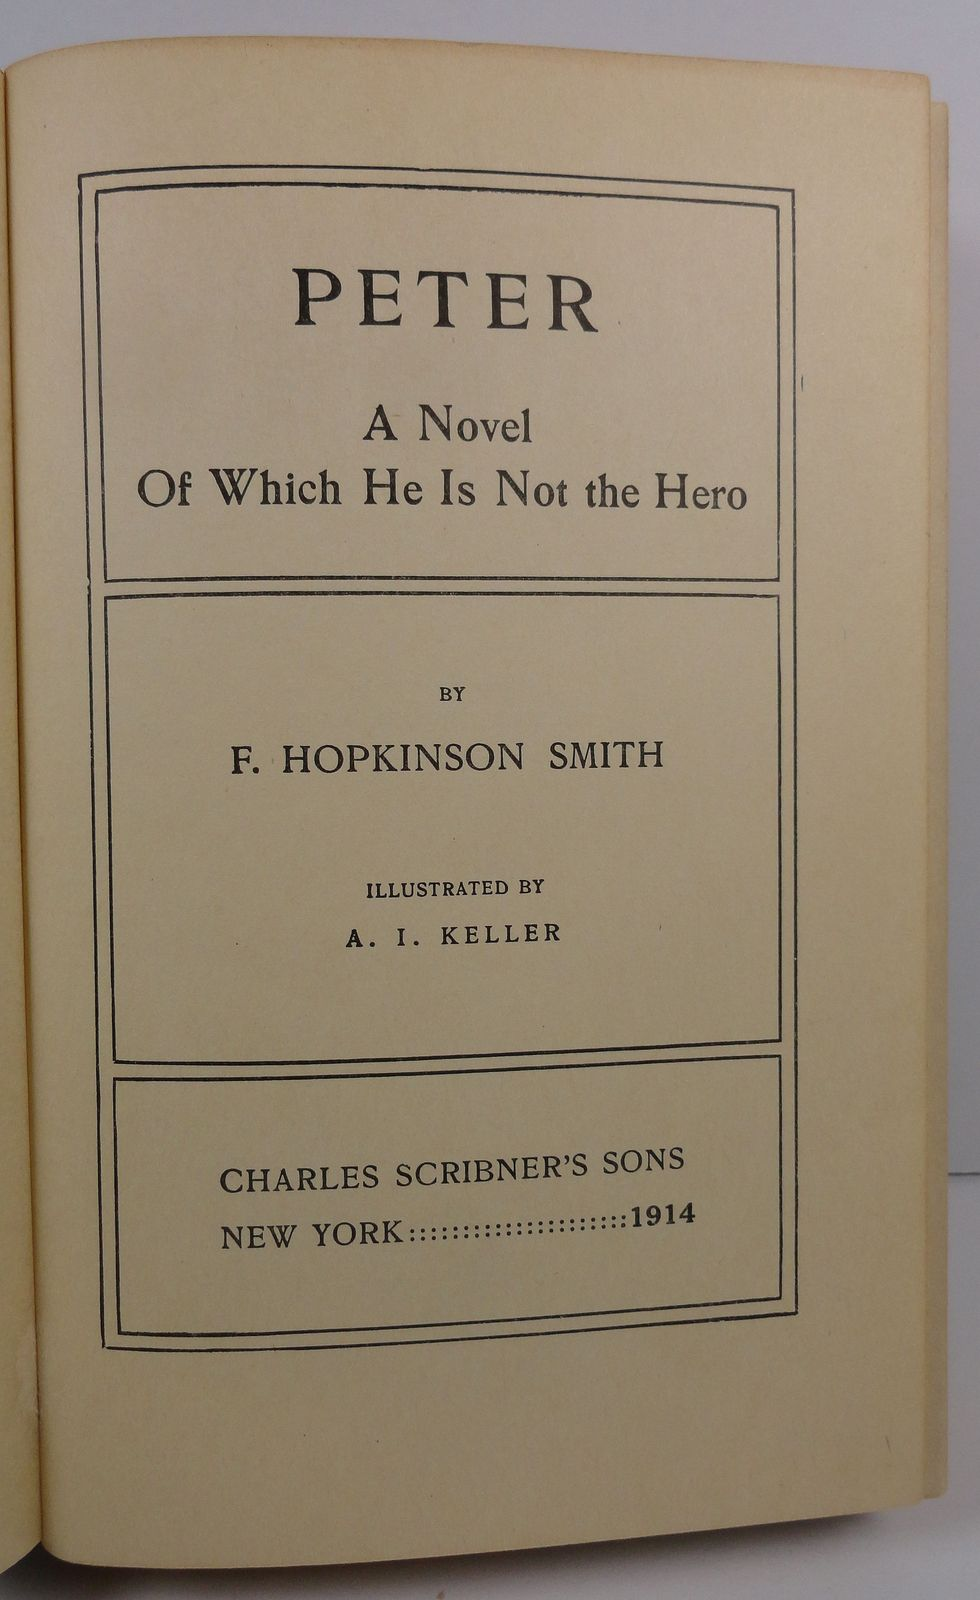 Peter A Novel  by F. Hopkinson Smith 1914 Charles Scribner